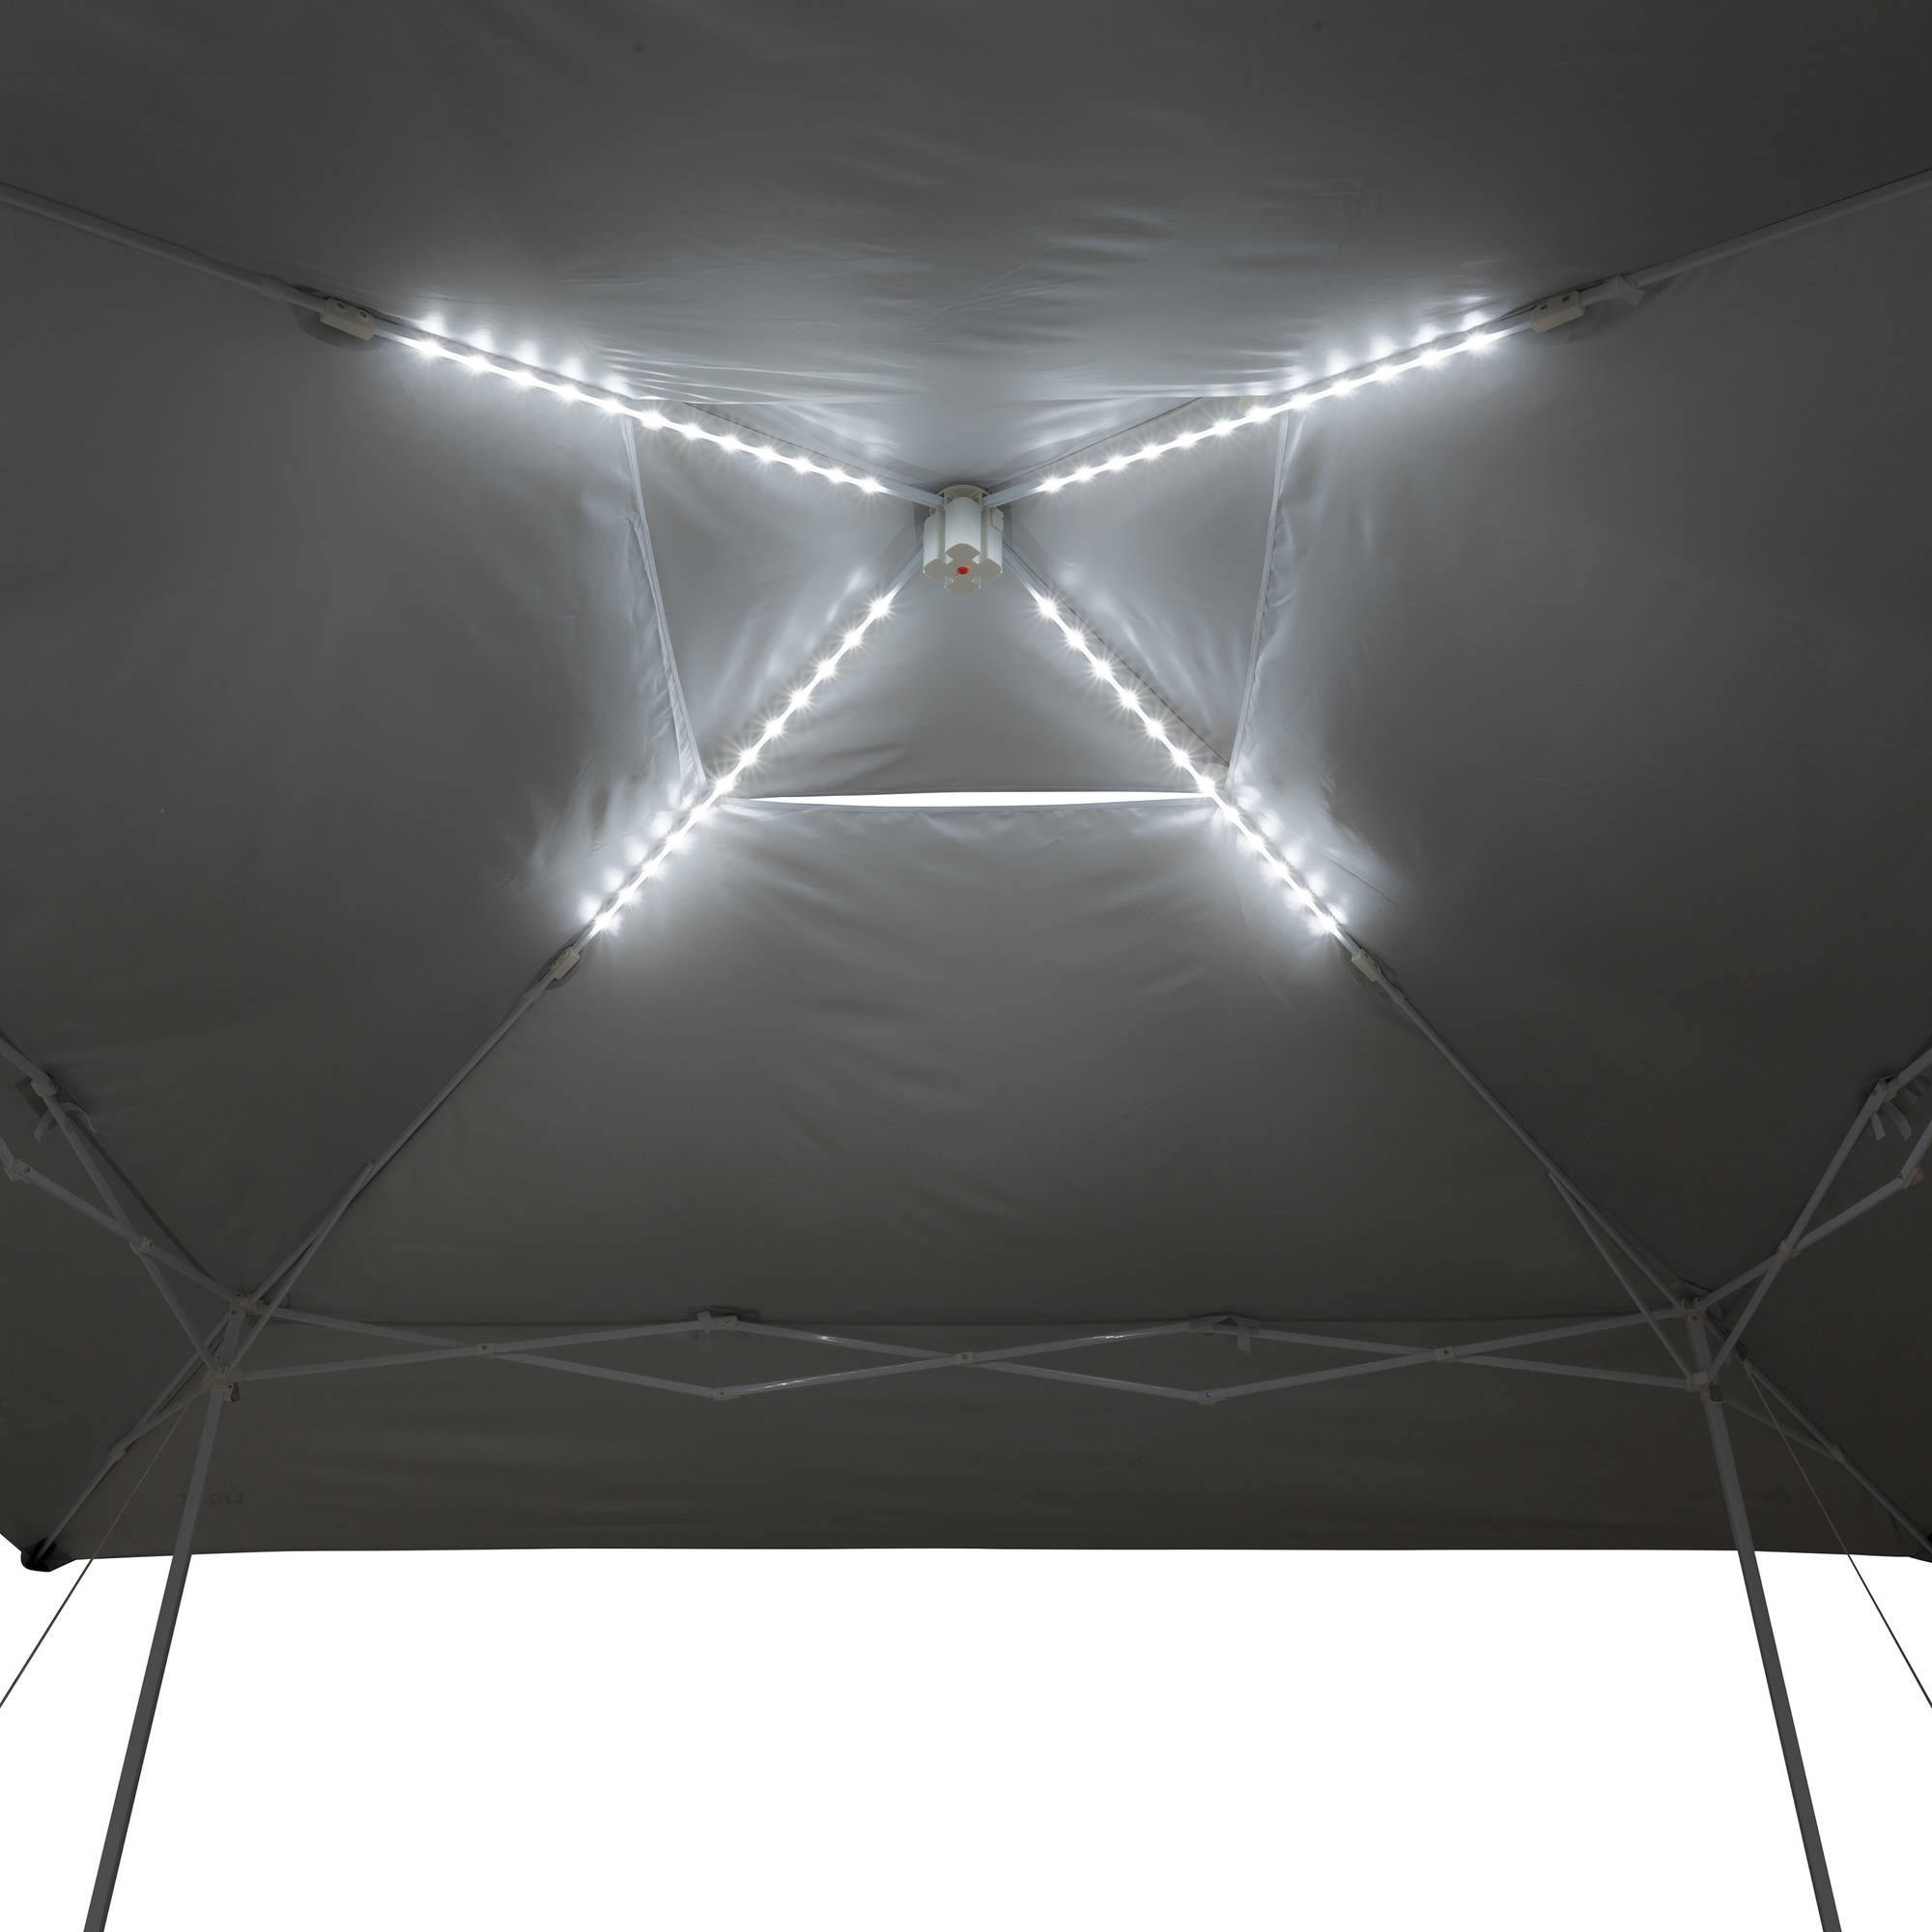 Ozark Trail 14  x 14  Instant Canopy With Led Lighting System - Walmart.com 17b6ef552c1